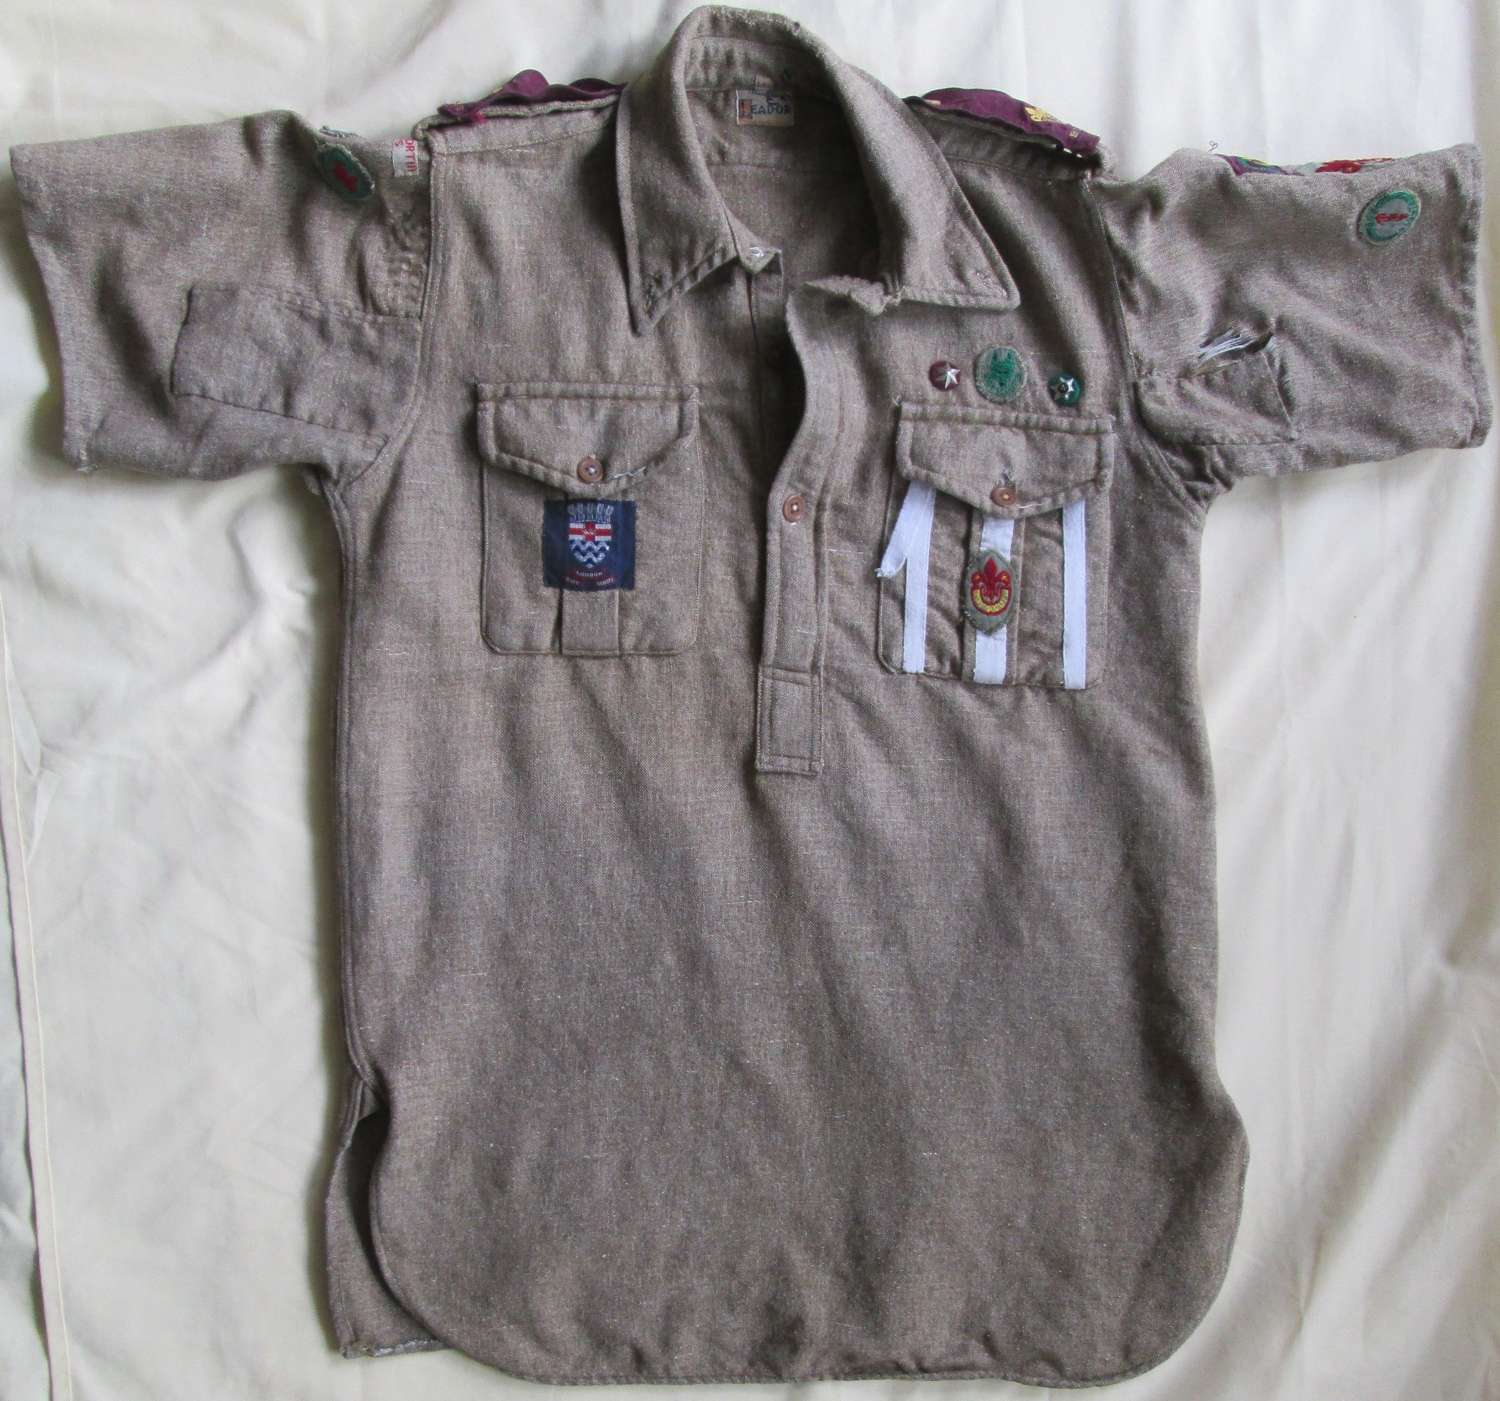 A BOY SCOUT SHIRT FROM THE 1950'S